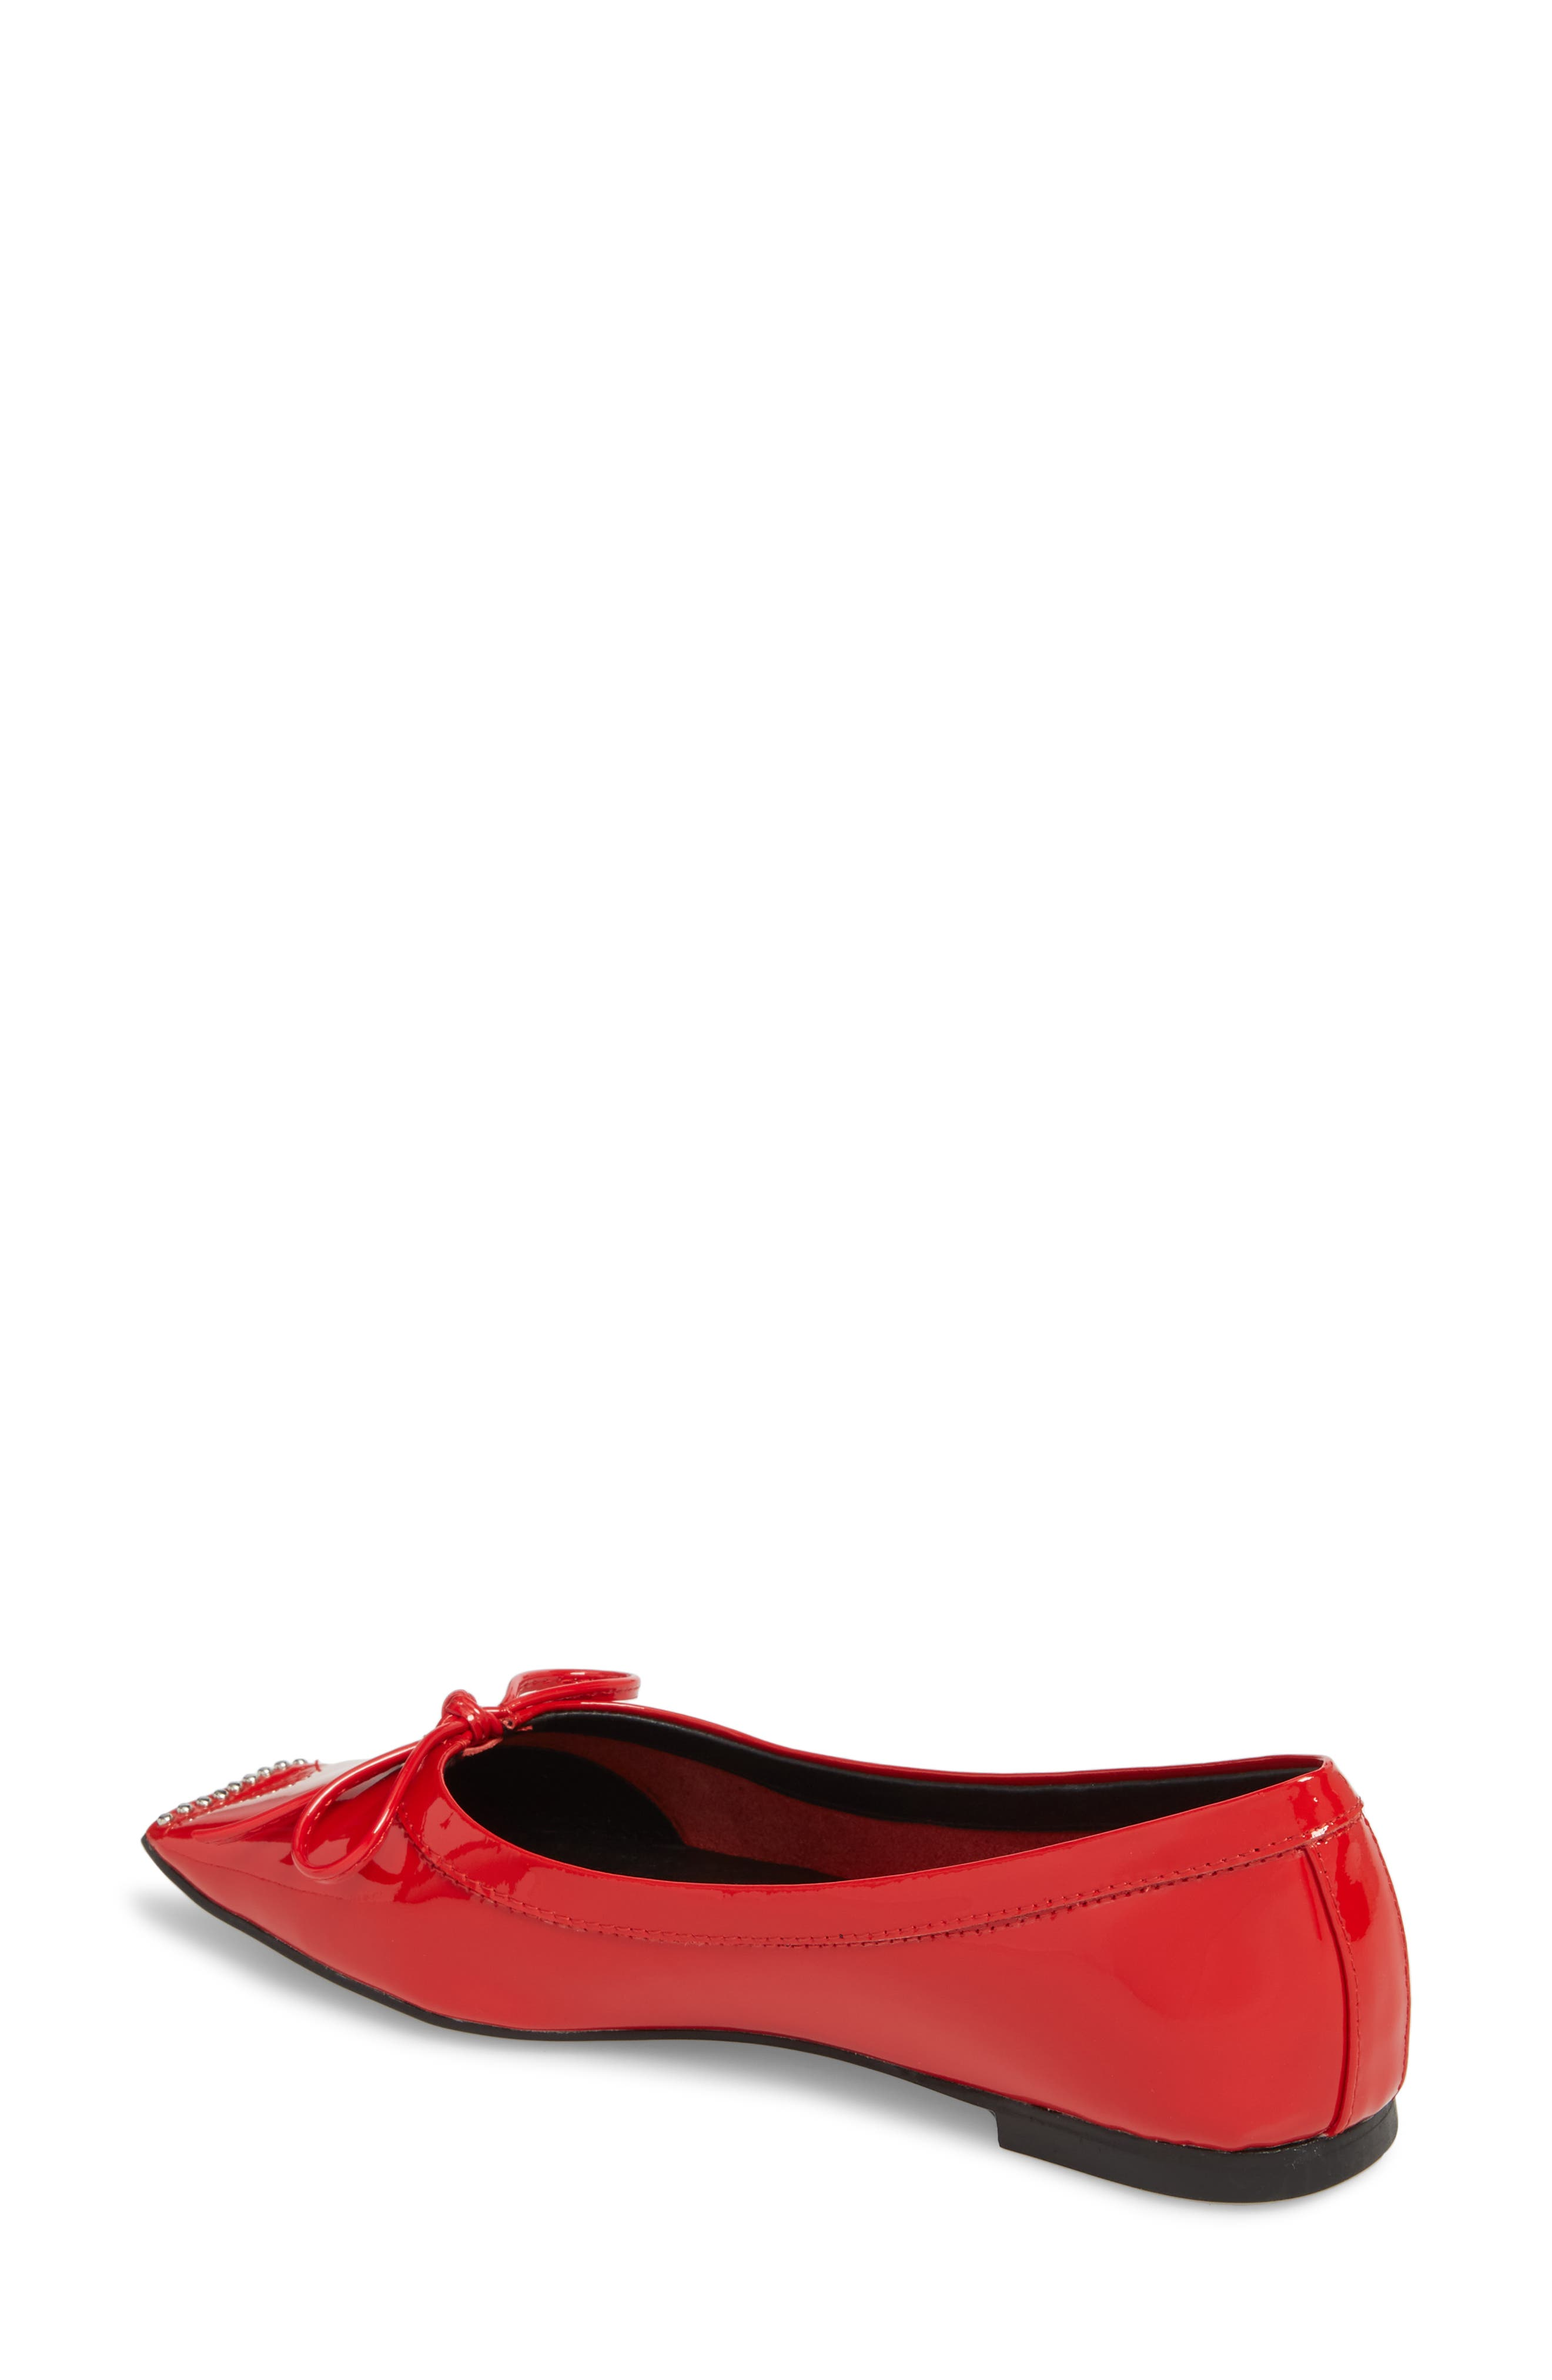 Achira Flat,                             Alternate thumbnail 2, color,                             Red Patent Leather